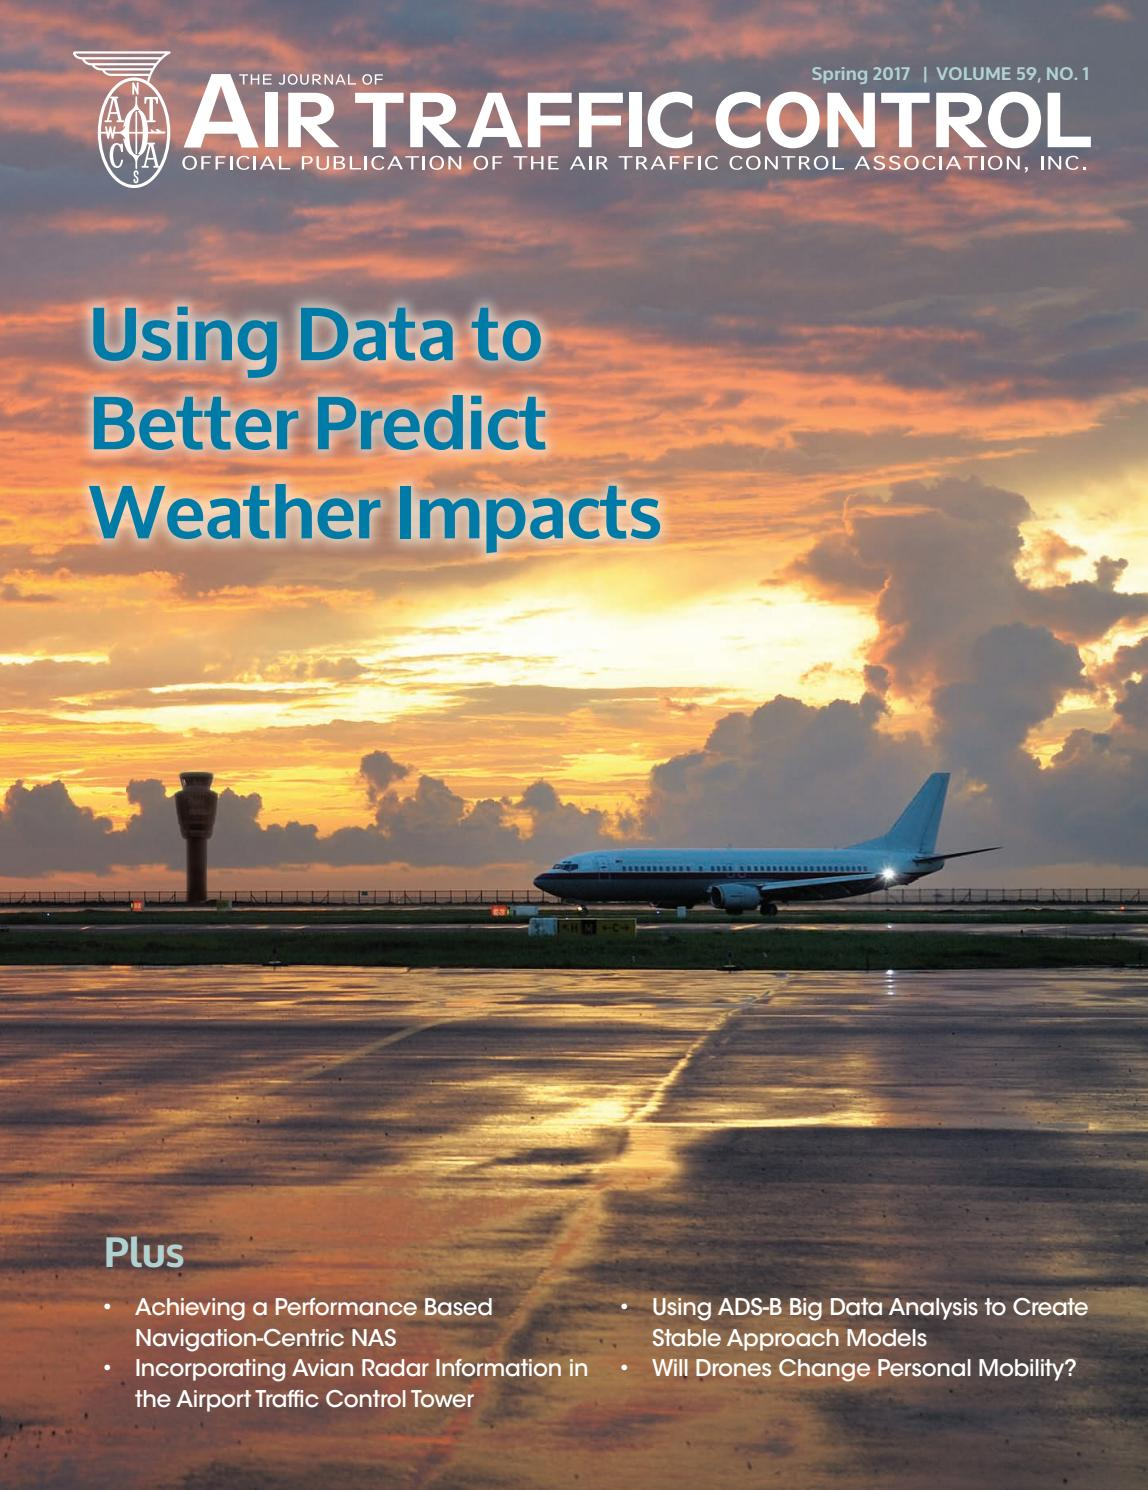 ATCA Journal - Spring 2017 by Air Traffic Control Association - issuu